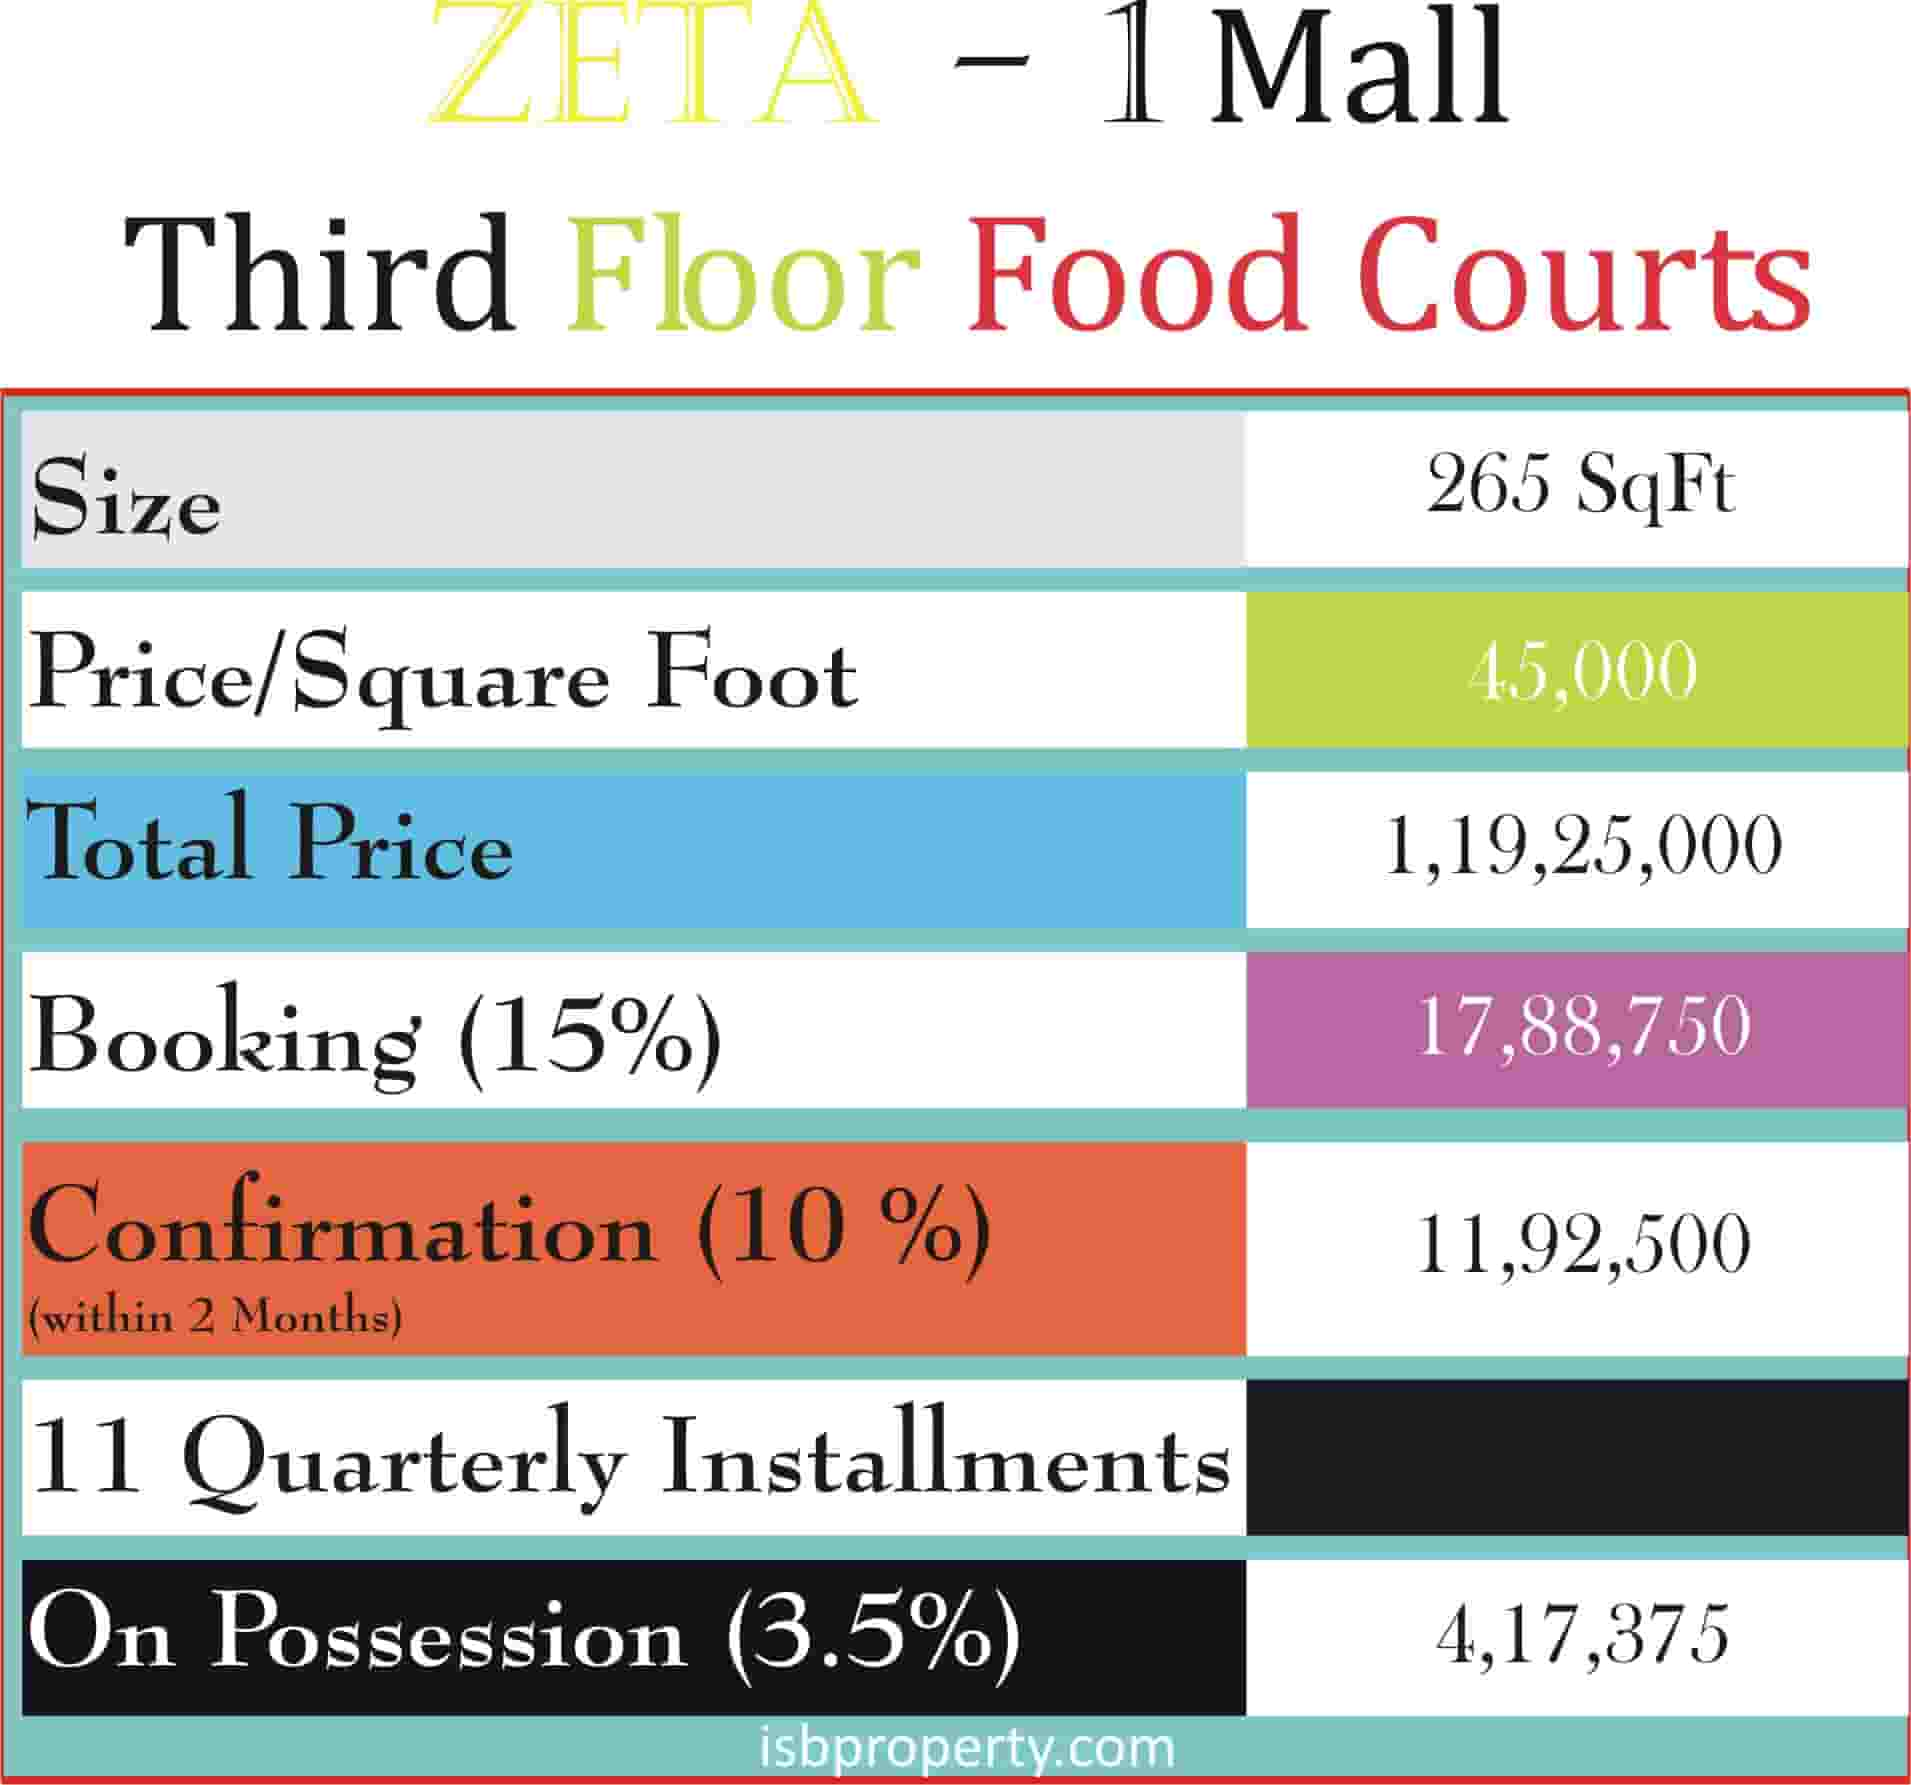 Zeta-1 Mall 3rd Floor Payment Plan